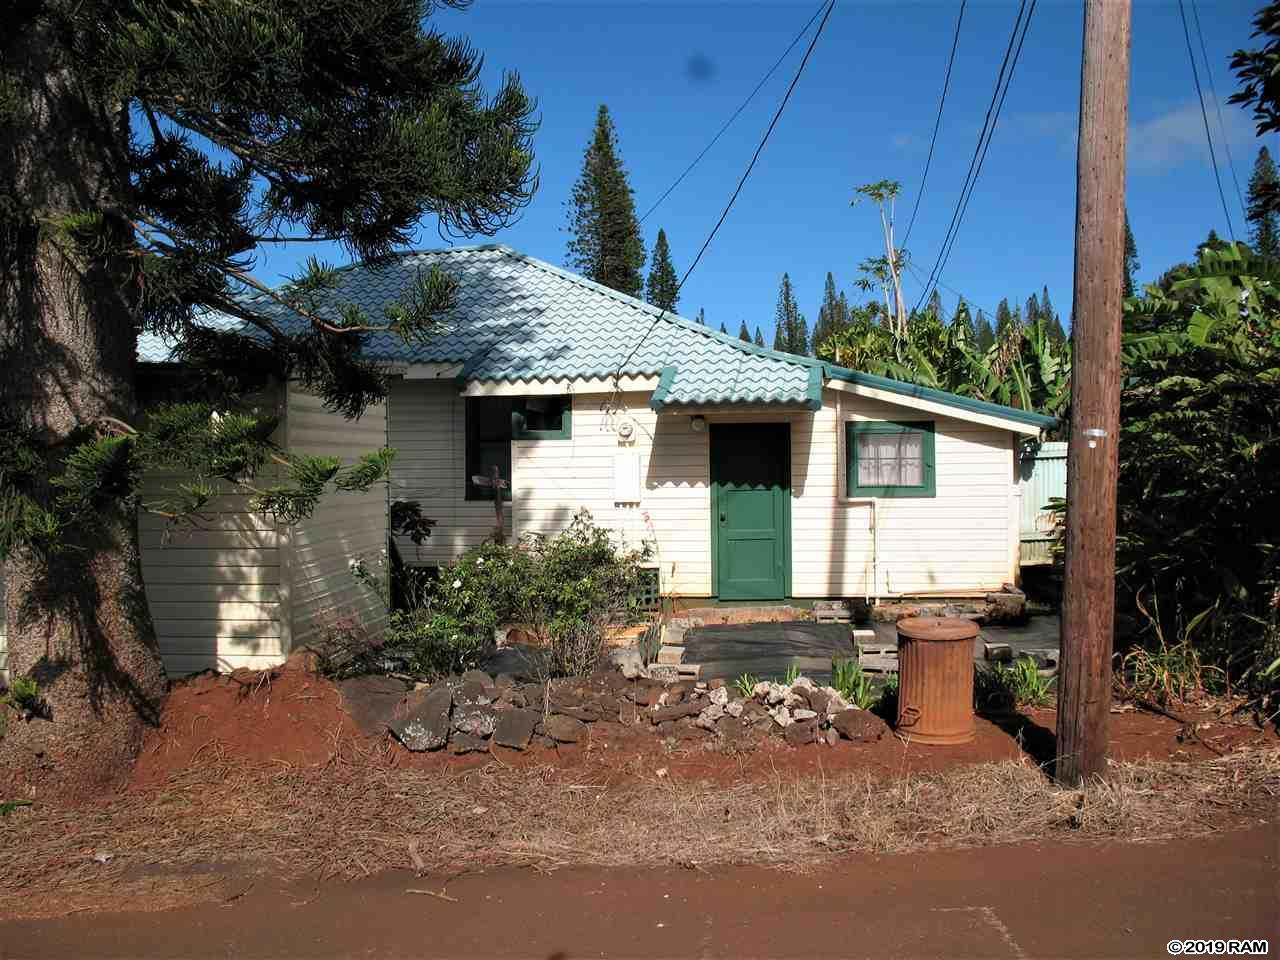 1172 Olapa St in Lanai City